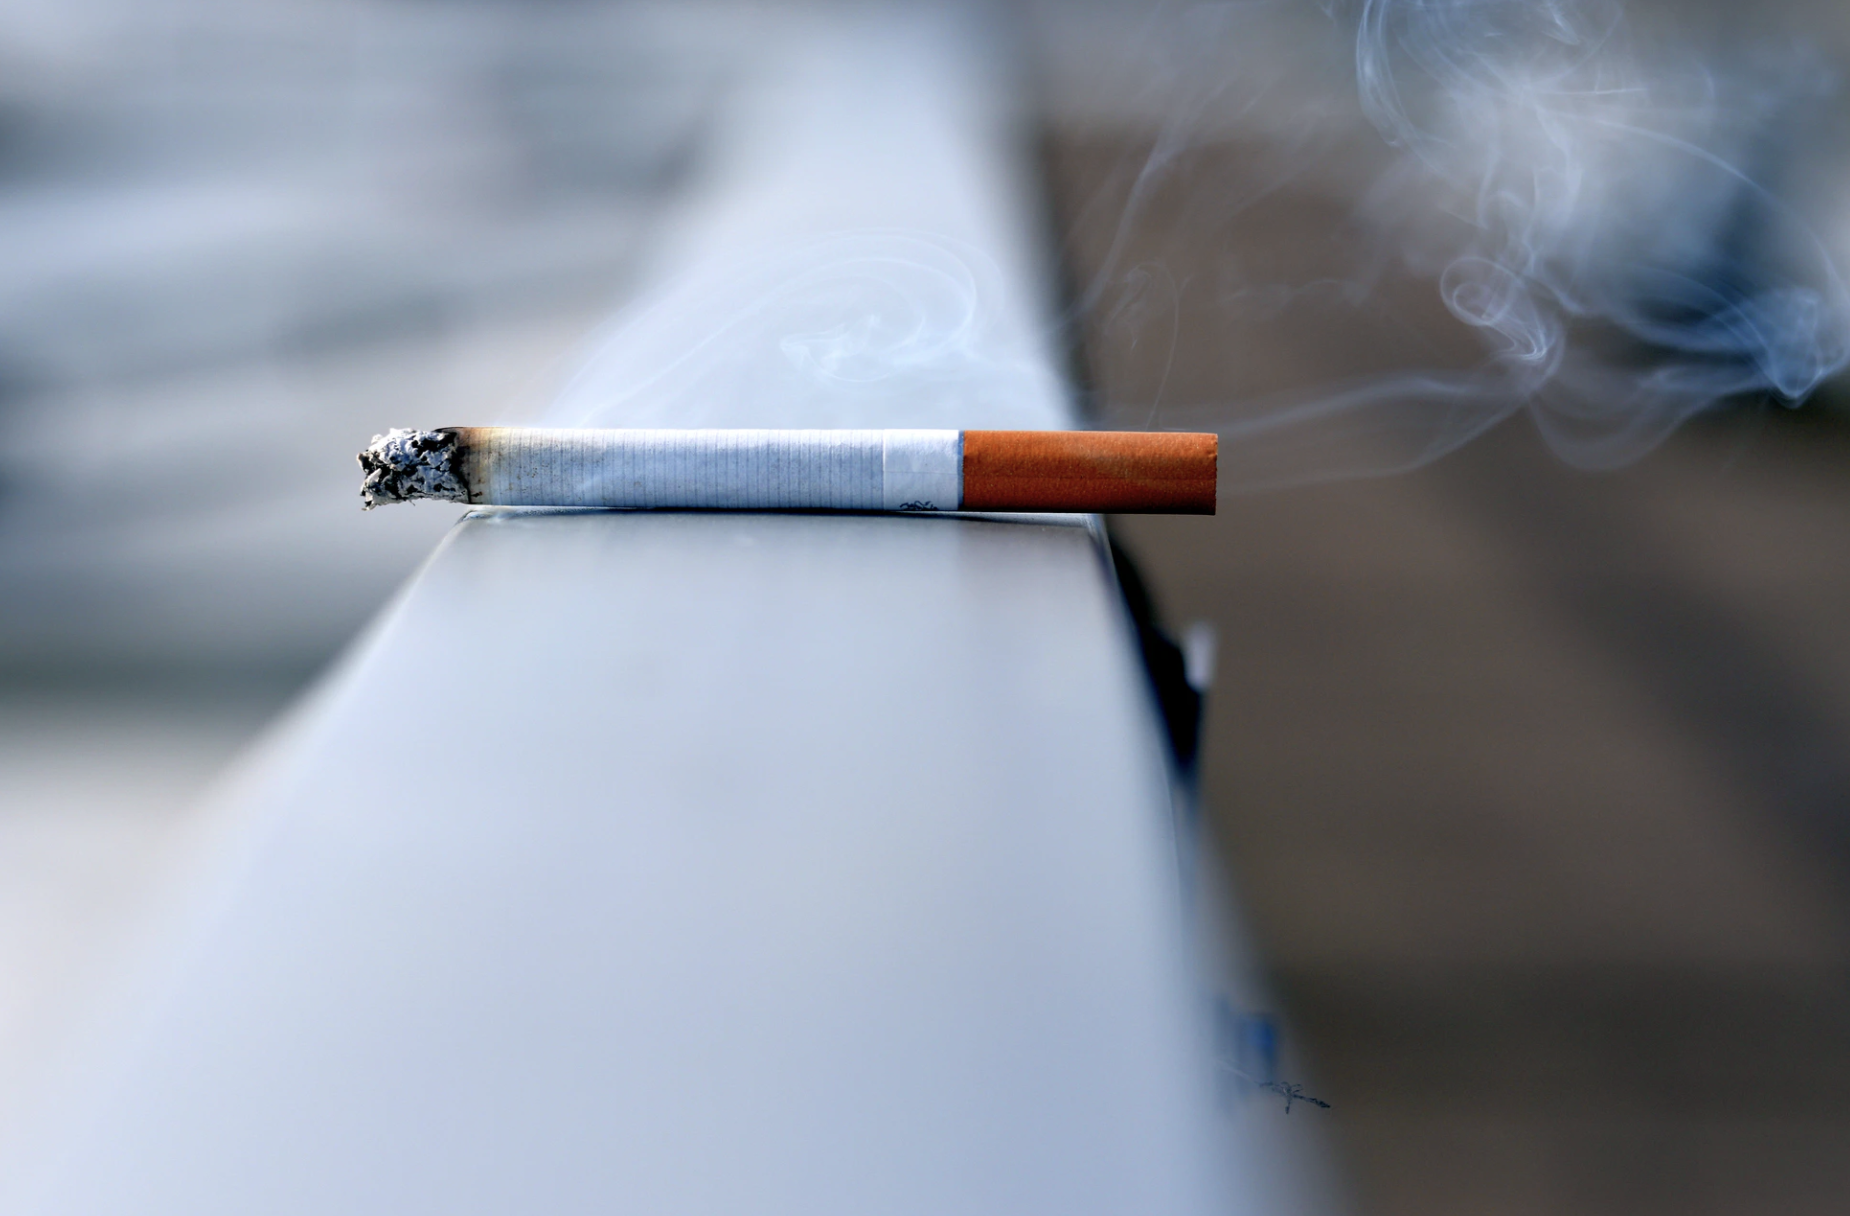 Ministry of Health said raising the minimum legal age is part of Singapore's ongoing efforts to reduce smoking prevalence. Photo courtesy: Unsplash